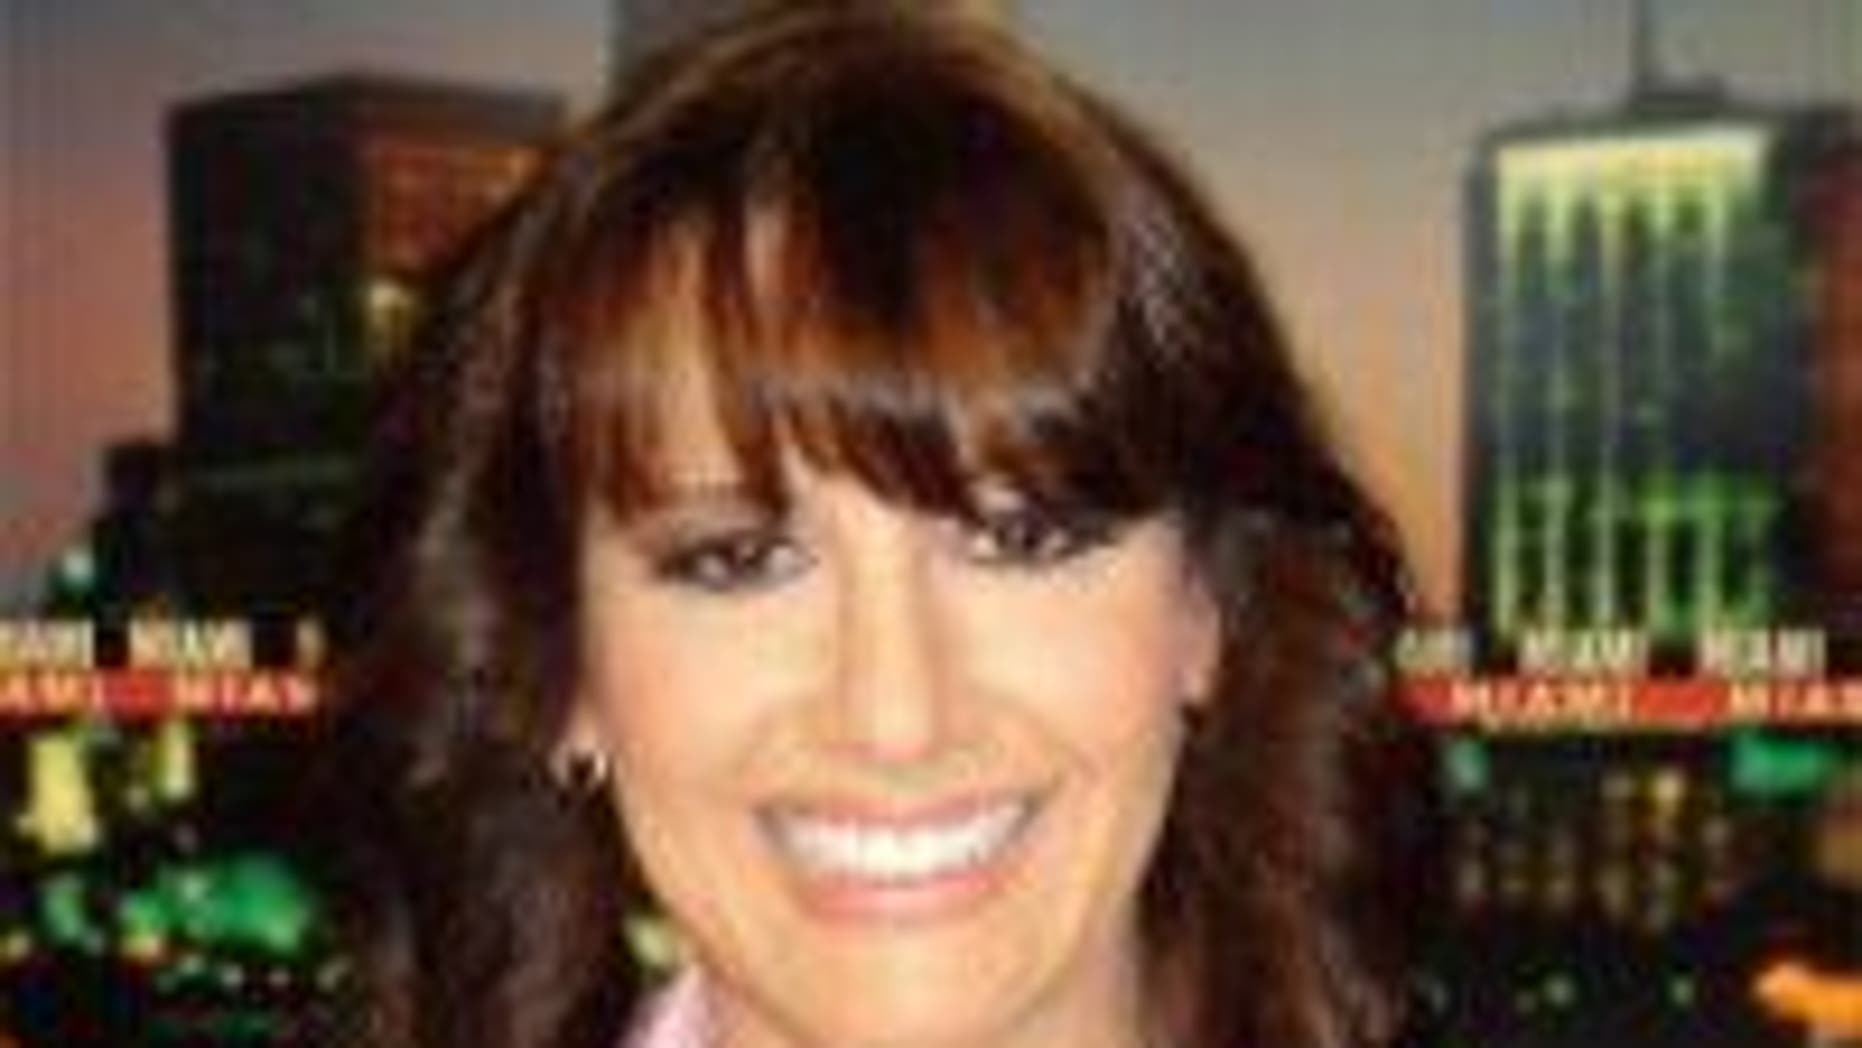 Prosecutor Stacey Honowitz is accused is shoplifting $43 worth of cosmetics from a Florida supermarket.